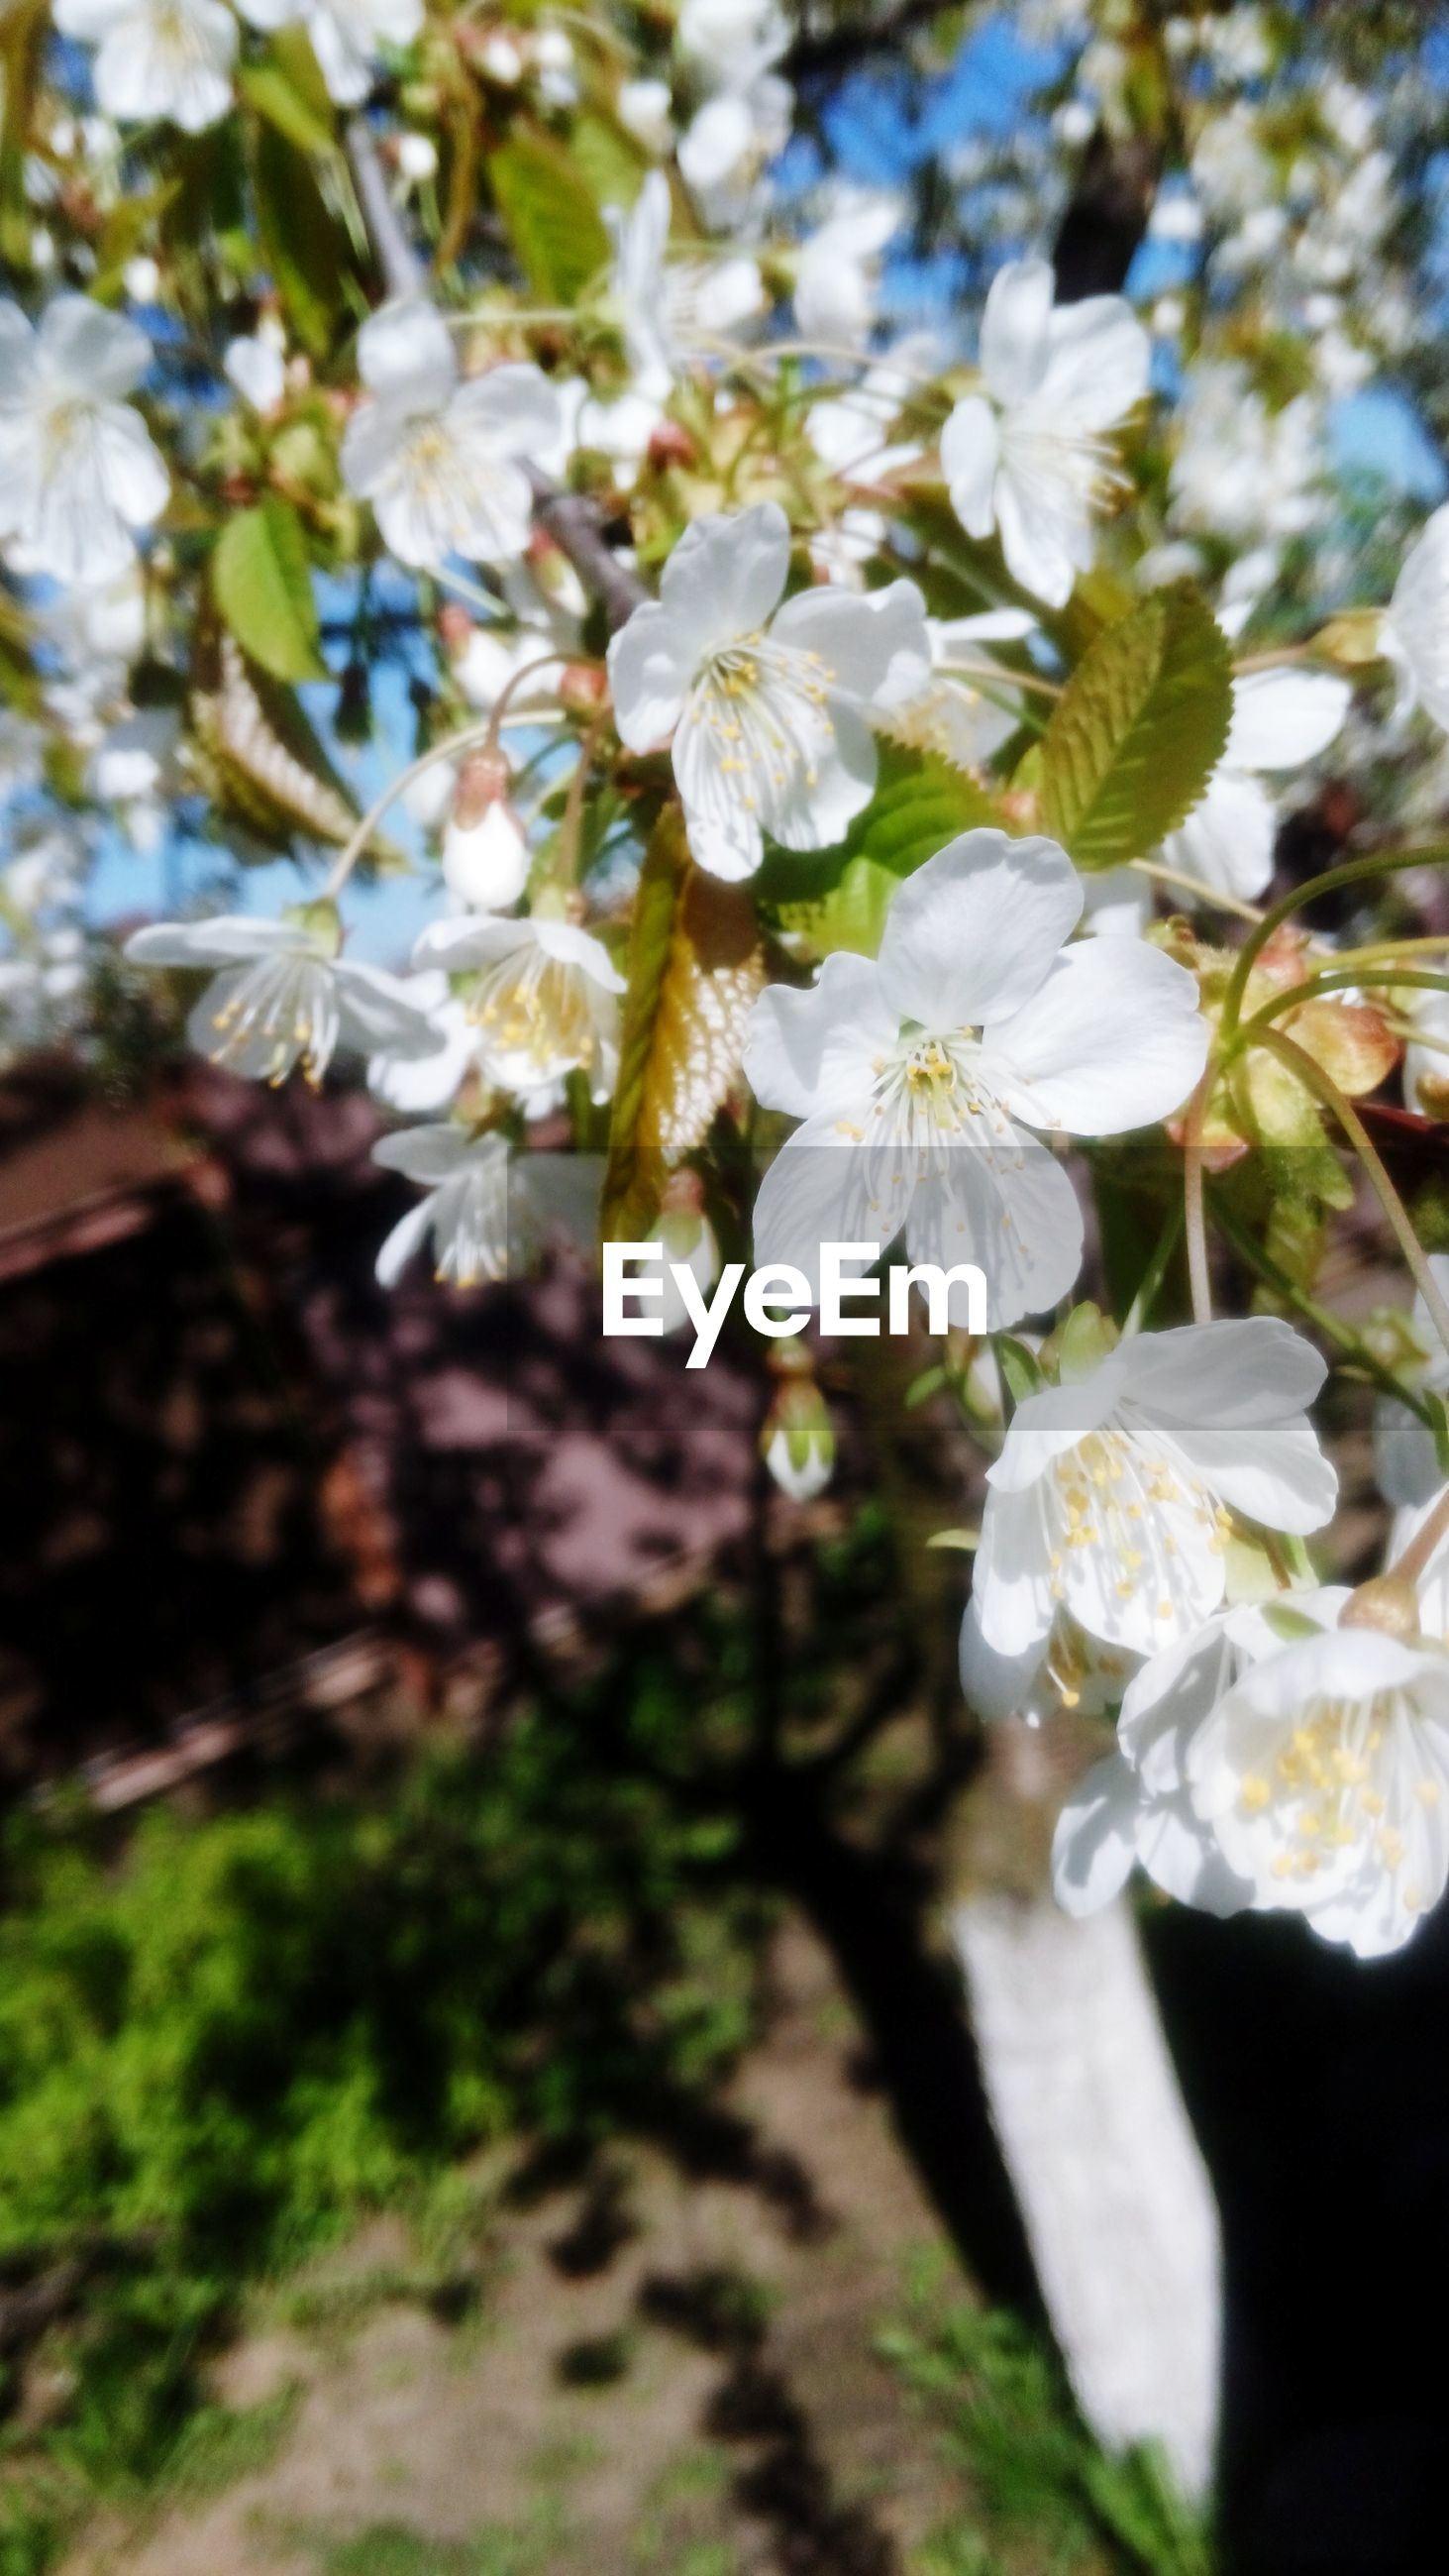 flower, freshness, growth, fragility, white color, petal, focus on foreground, beauty in nature, close-up, nature, flower head, blooming, plant, selective focus, tree, in bloom, blossom, branch, day, outdoors